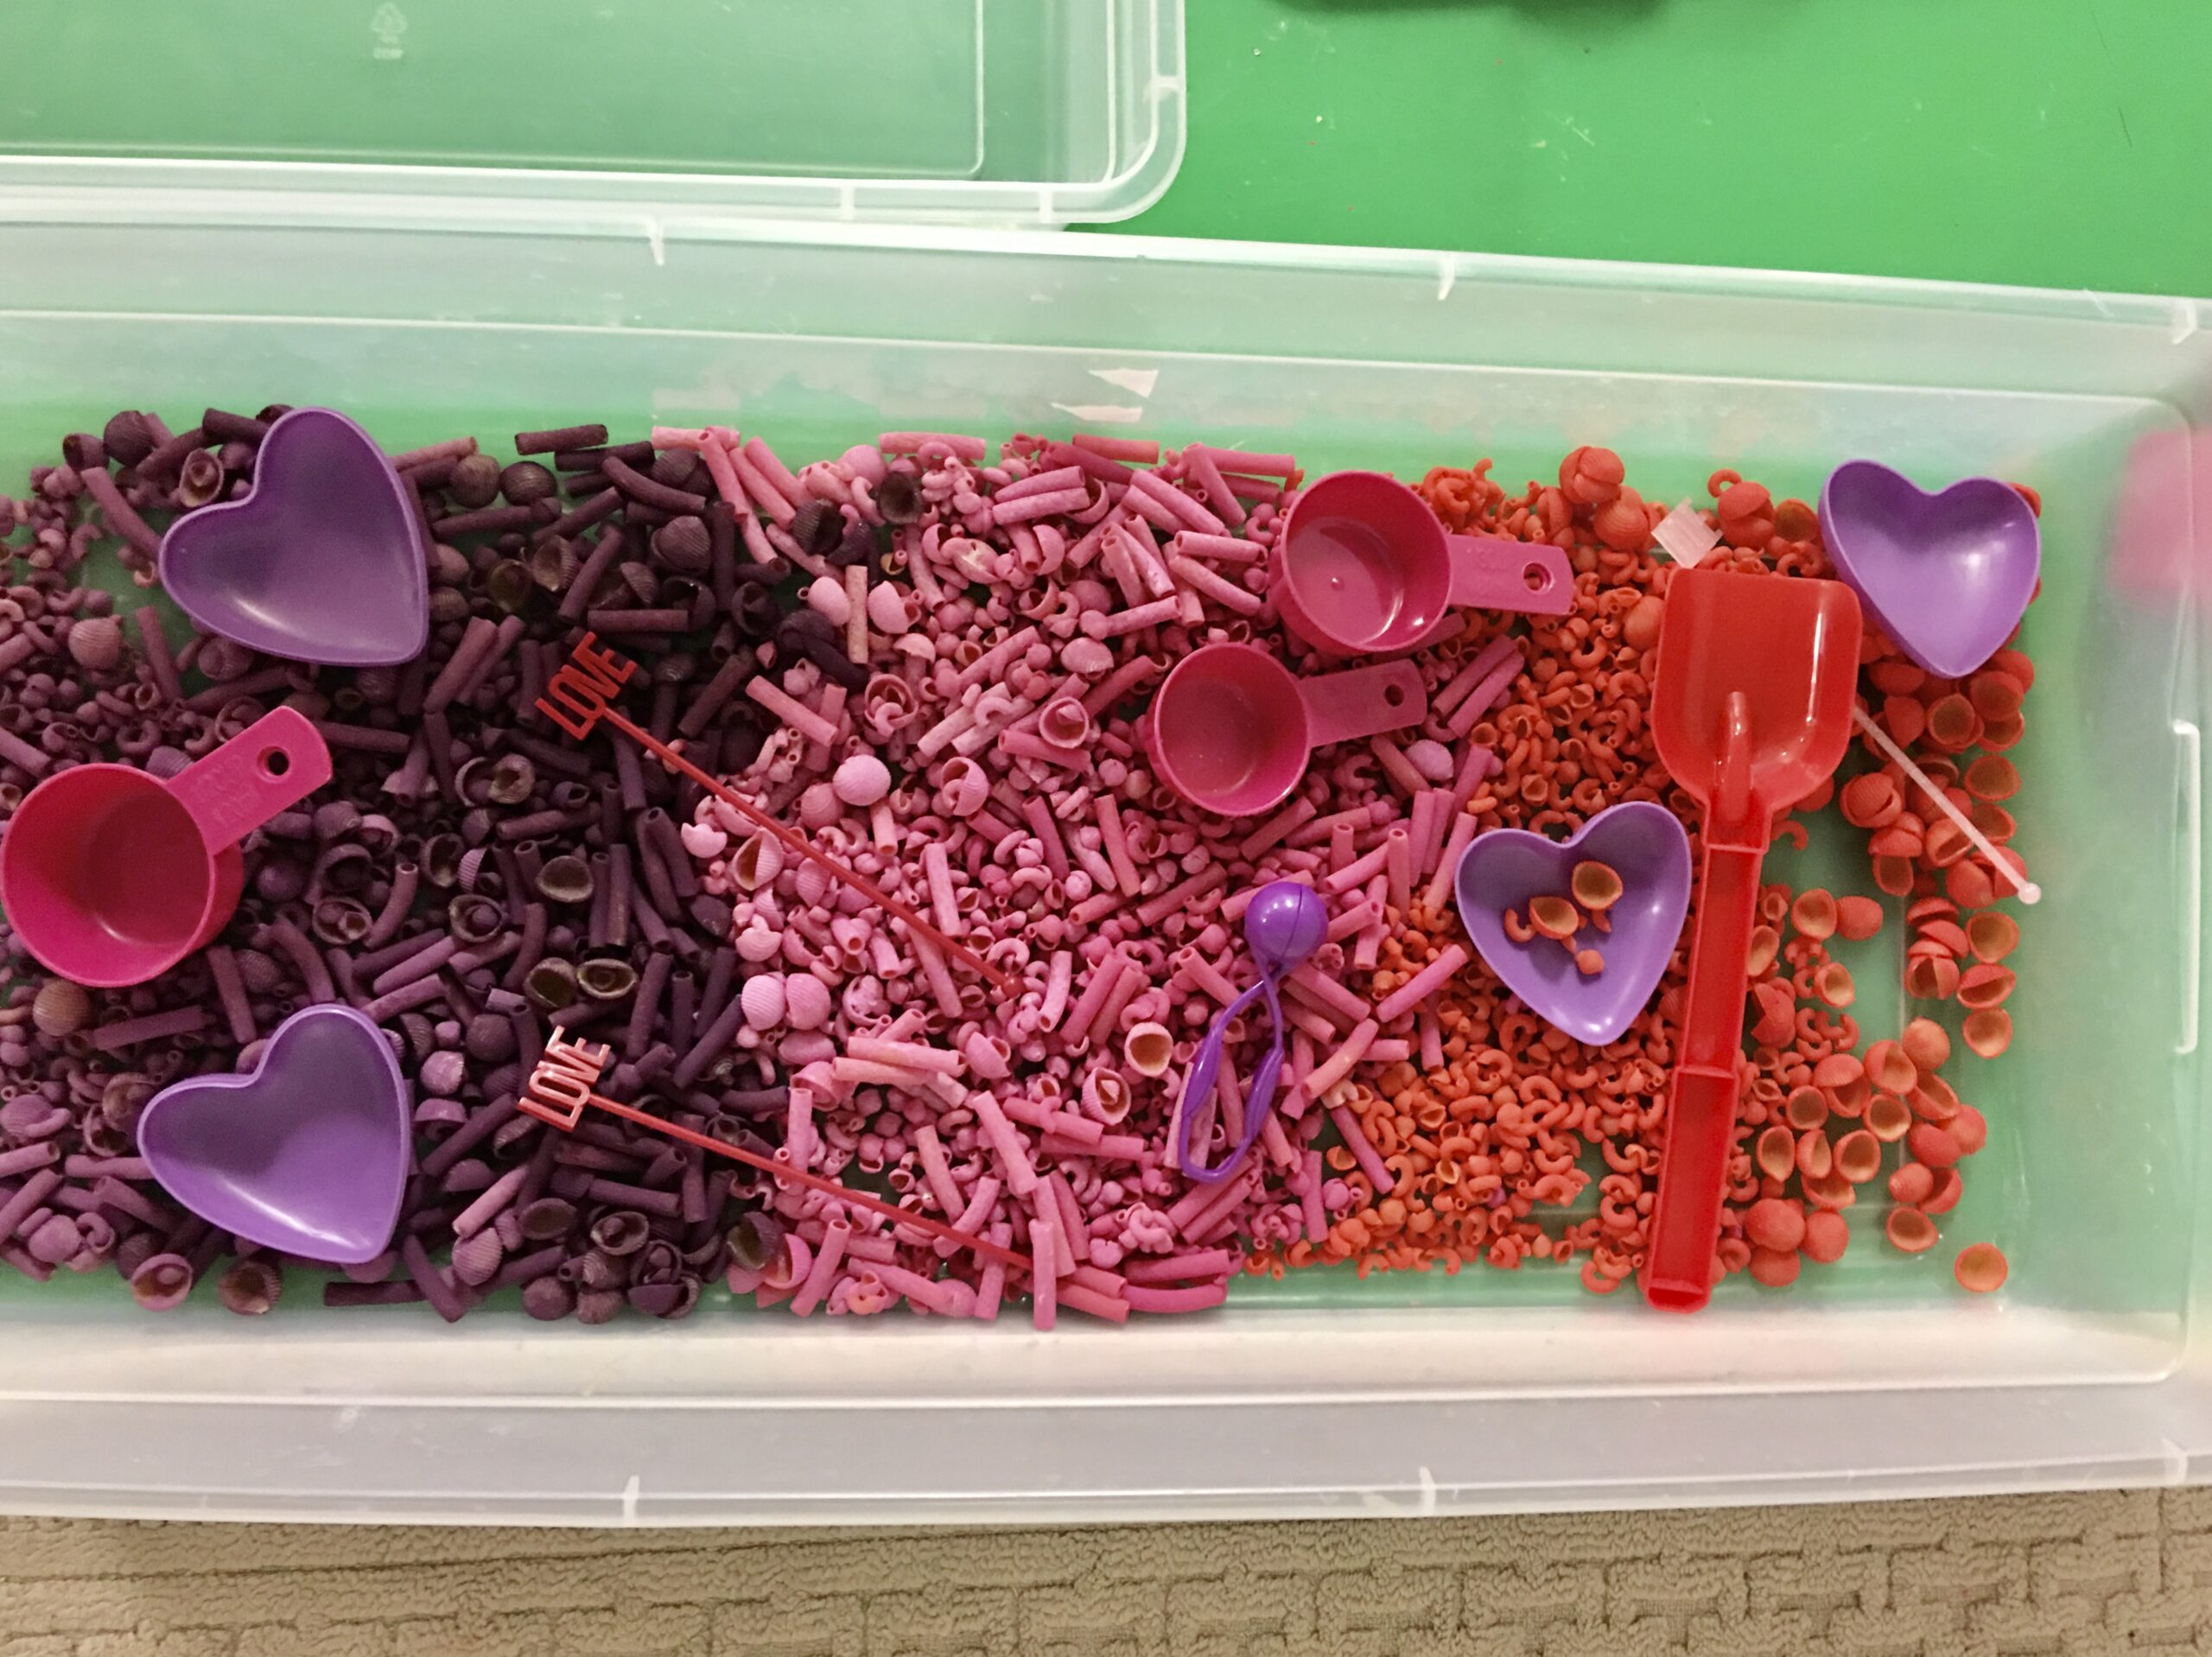 Come create a valentine's day themed sensory bin for your children.  Sensory bins allow children to safely explore the world around them and experience different textures.  Great for home or the classroom.